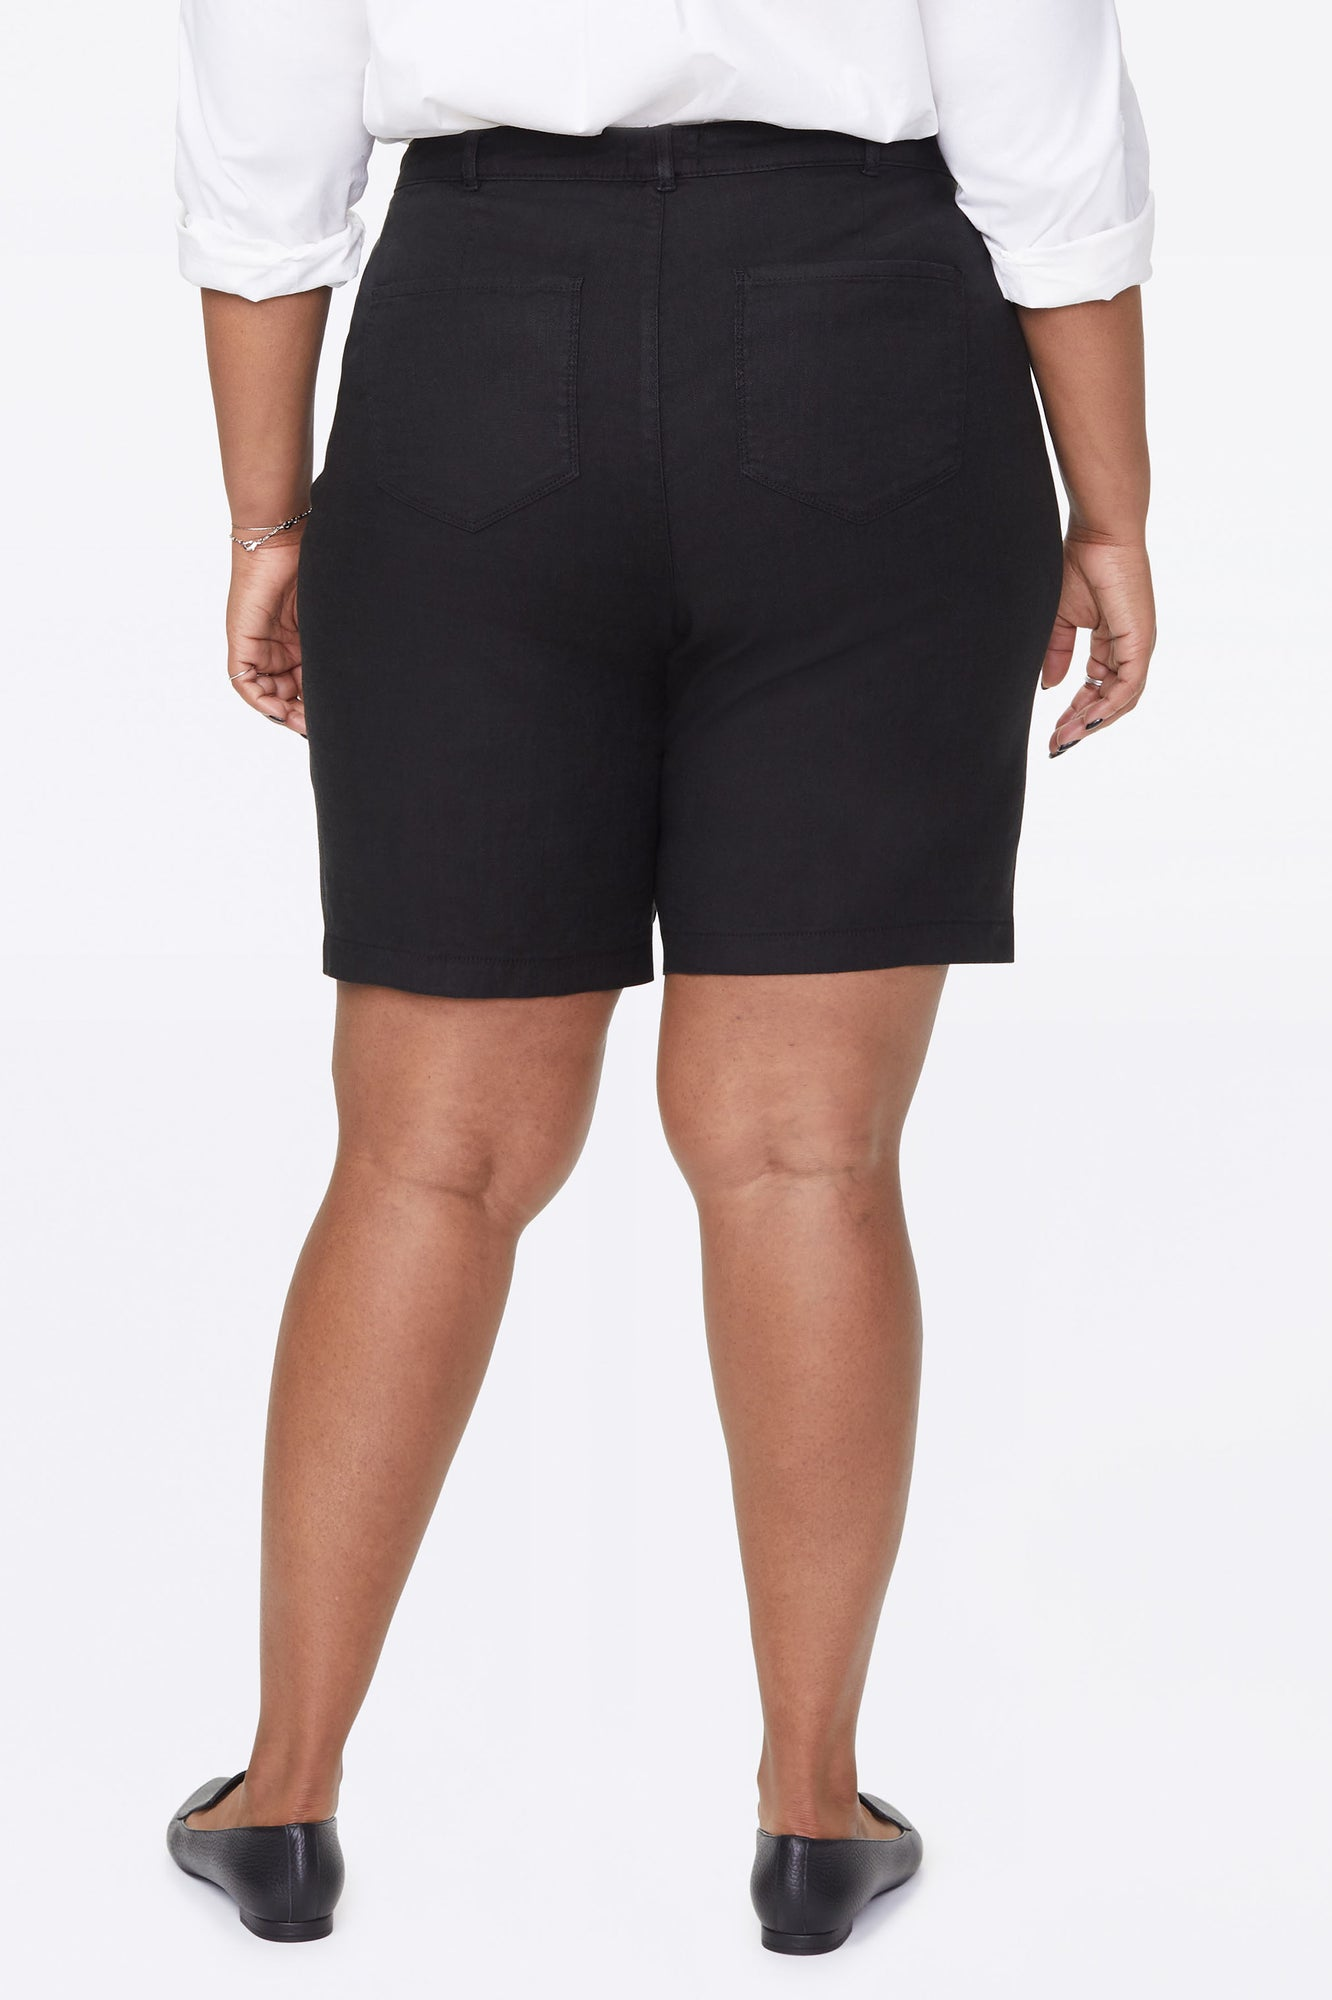 Bermuda Shorts In Plus Size - BLACK